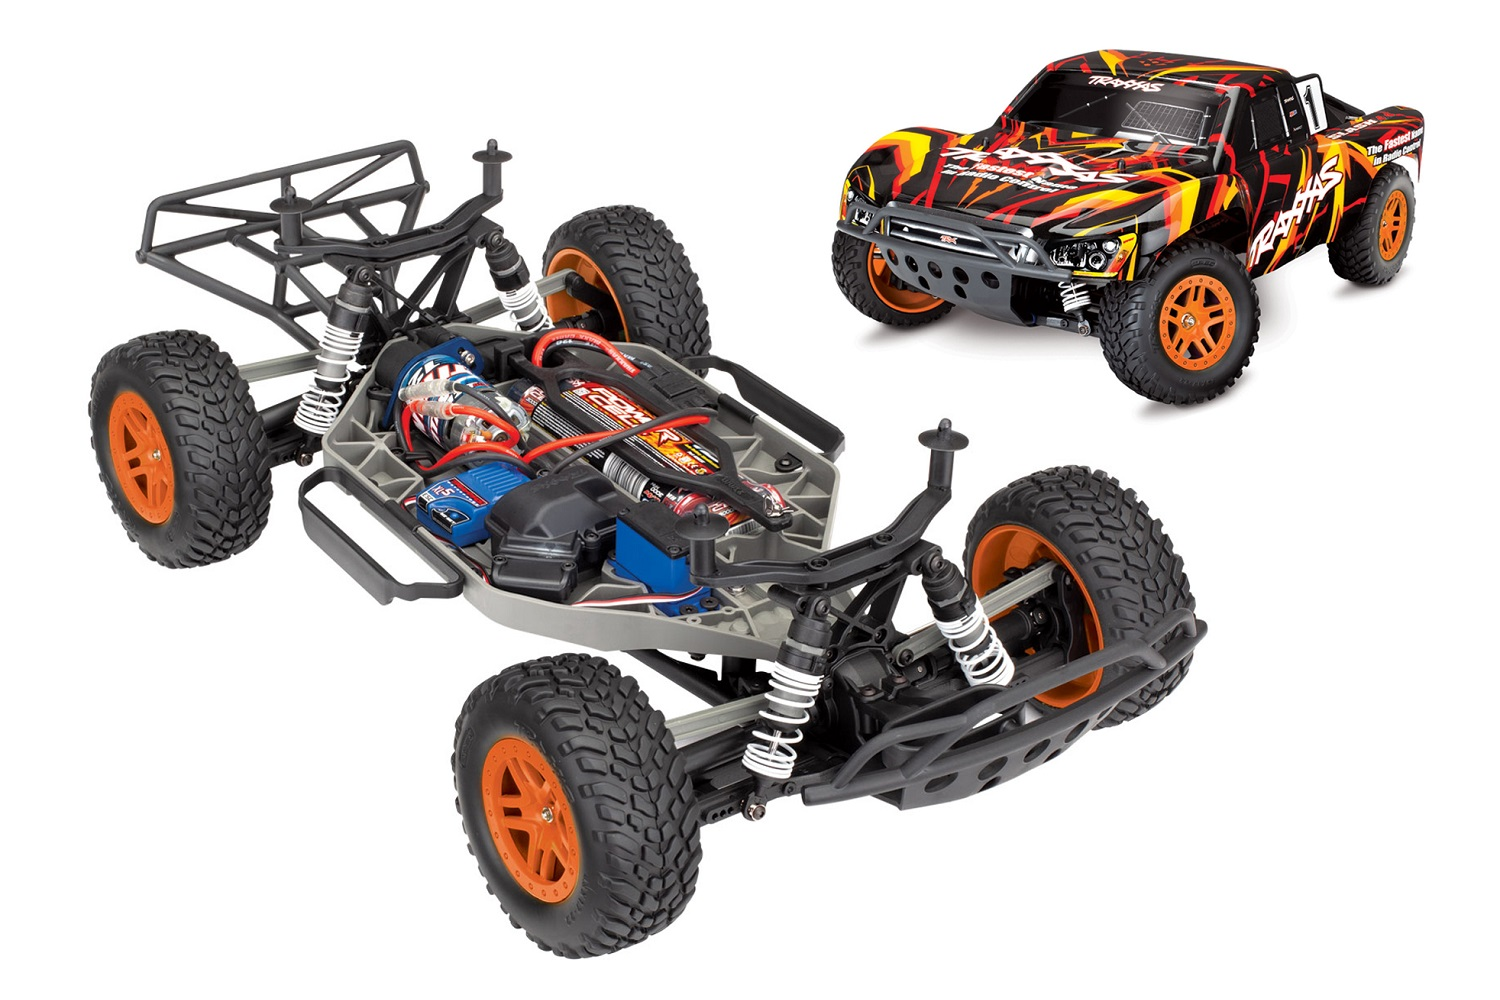 Traxxas Slash 4x4 Brushless Upgrades Cheaper Than Retail Price Buy Clothing Accessories And Lifestyle Products For Women Men